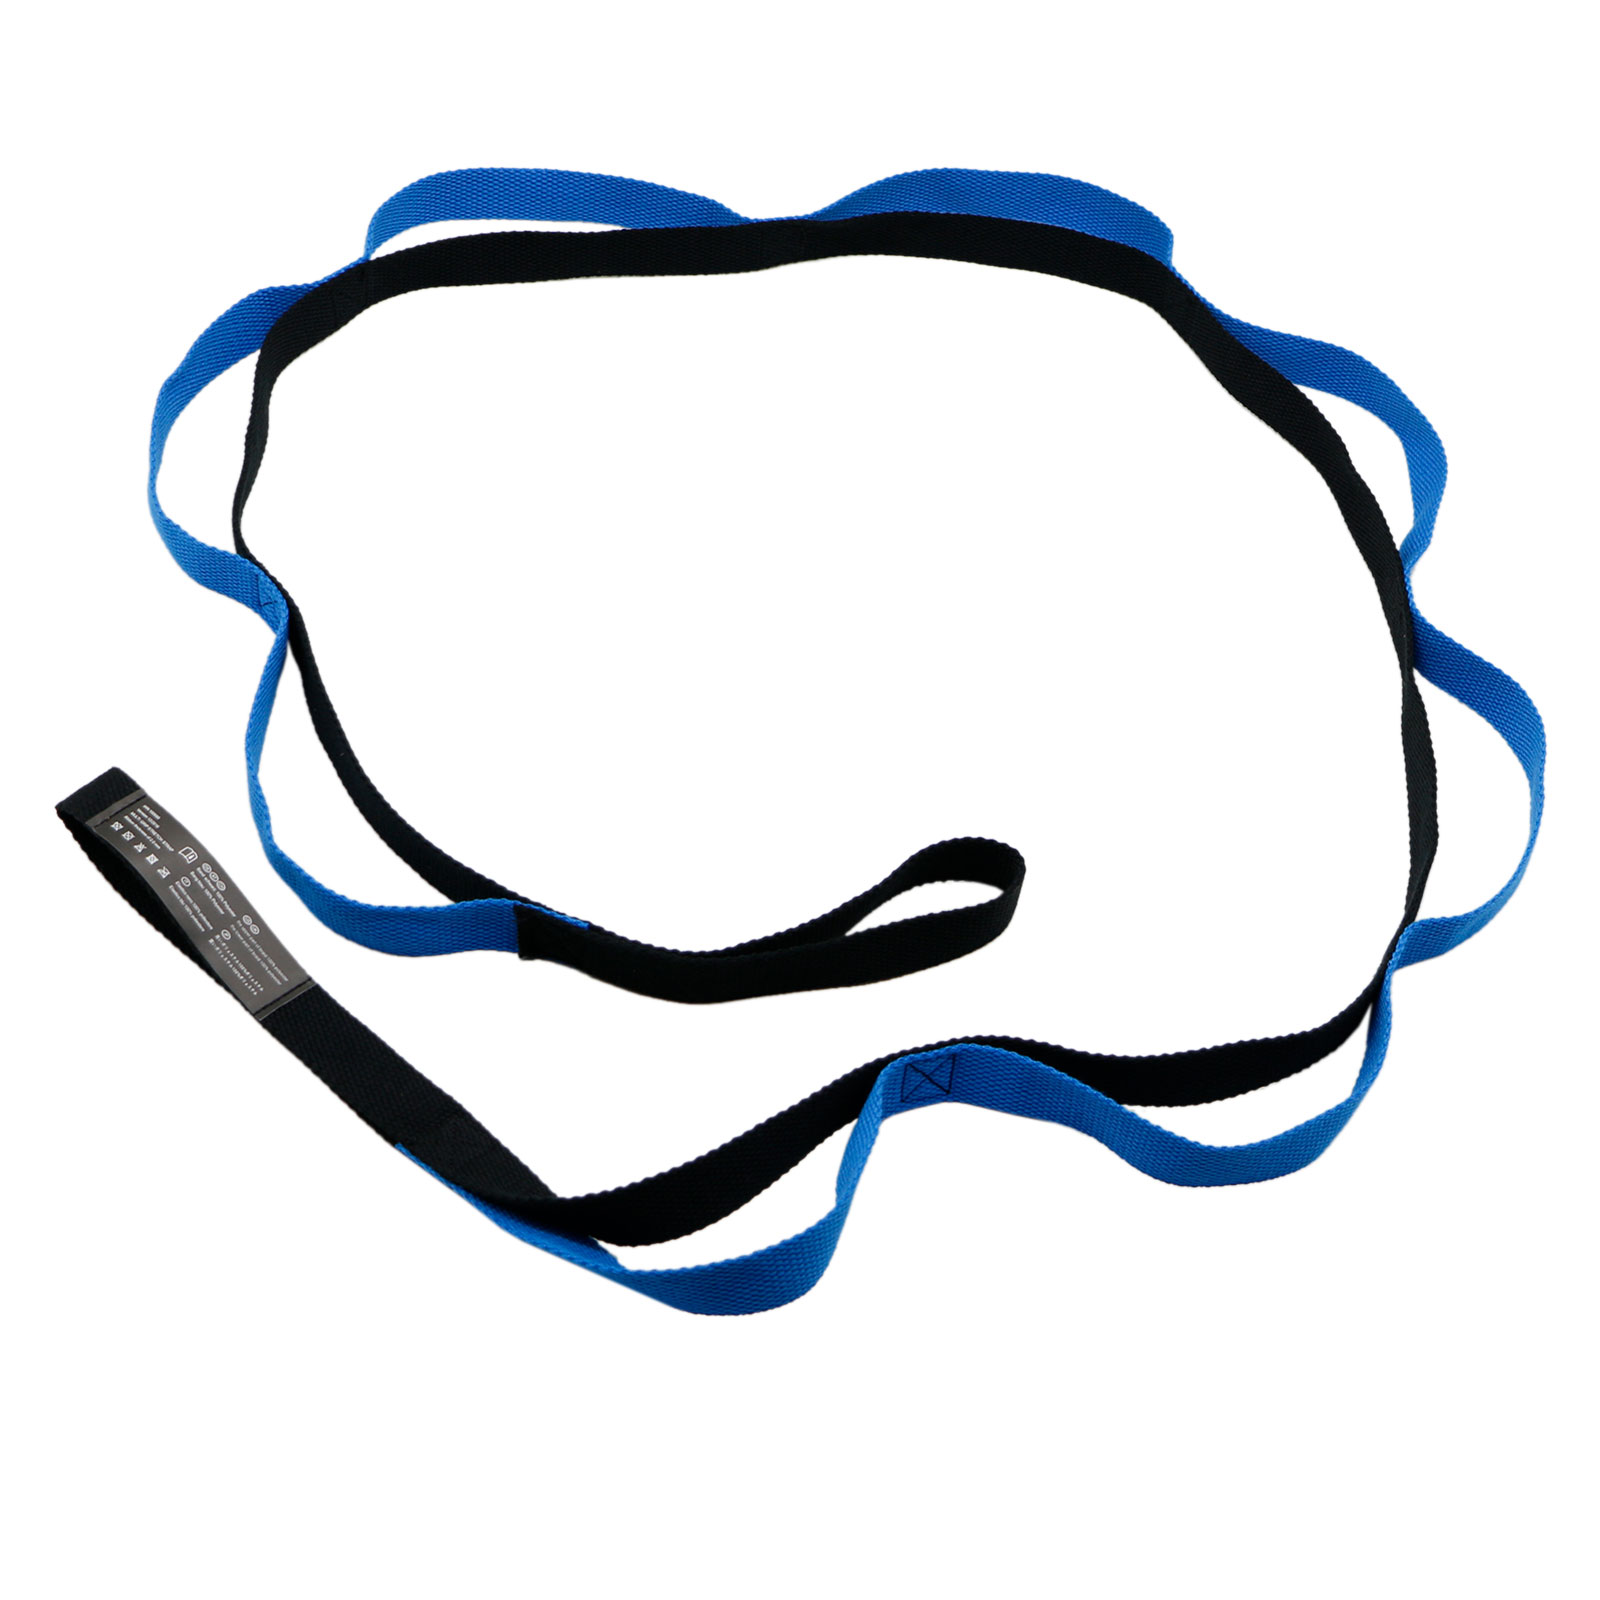 10 Fixed Loops Exercise Yoga Stretching Out Strap with Handle for Athletes Dancer, Your Physical Therapists &... by EEEKit